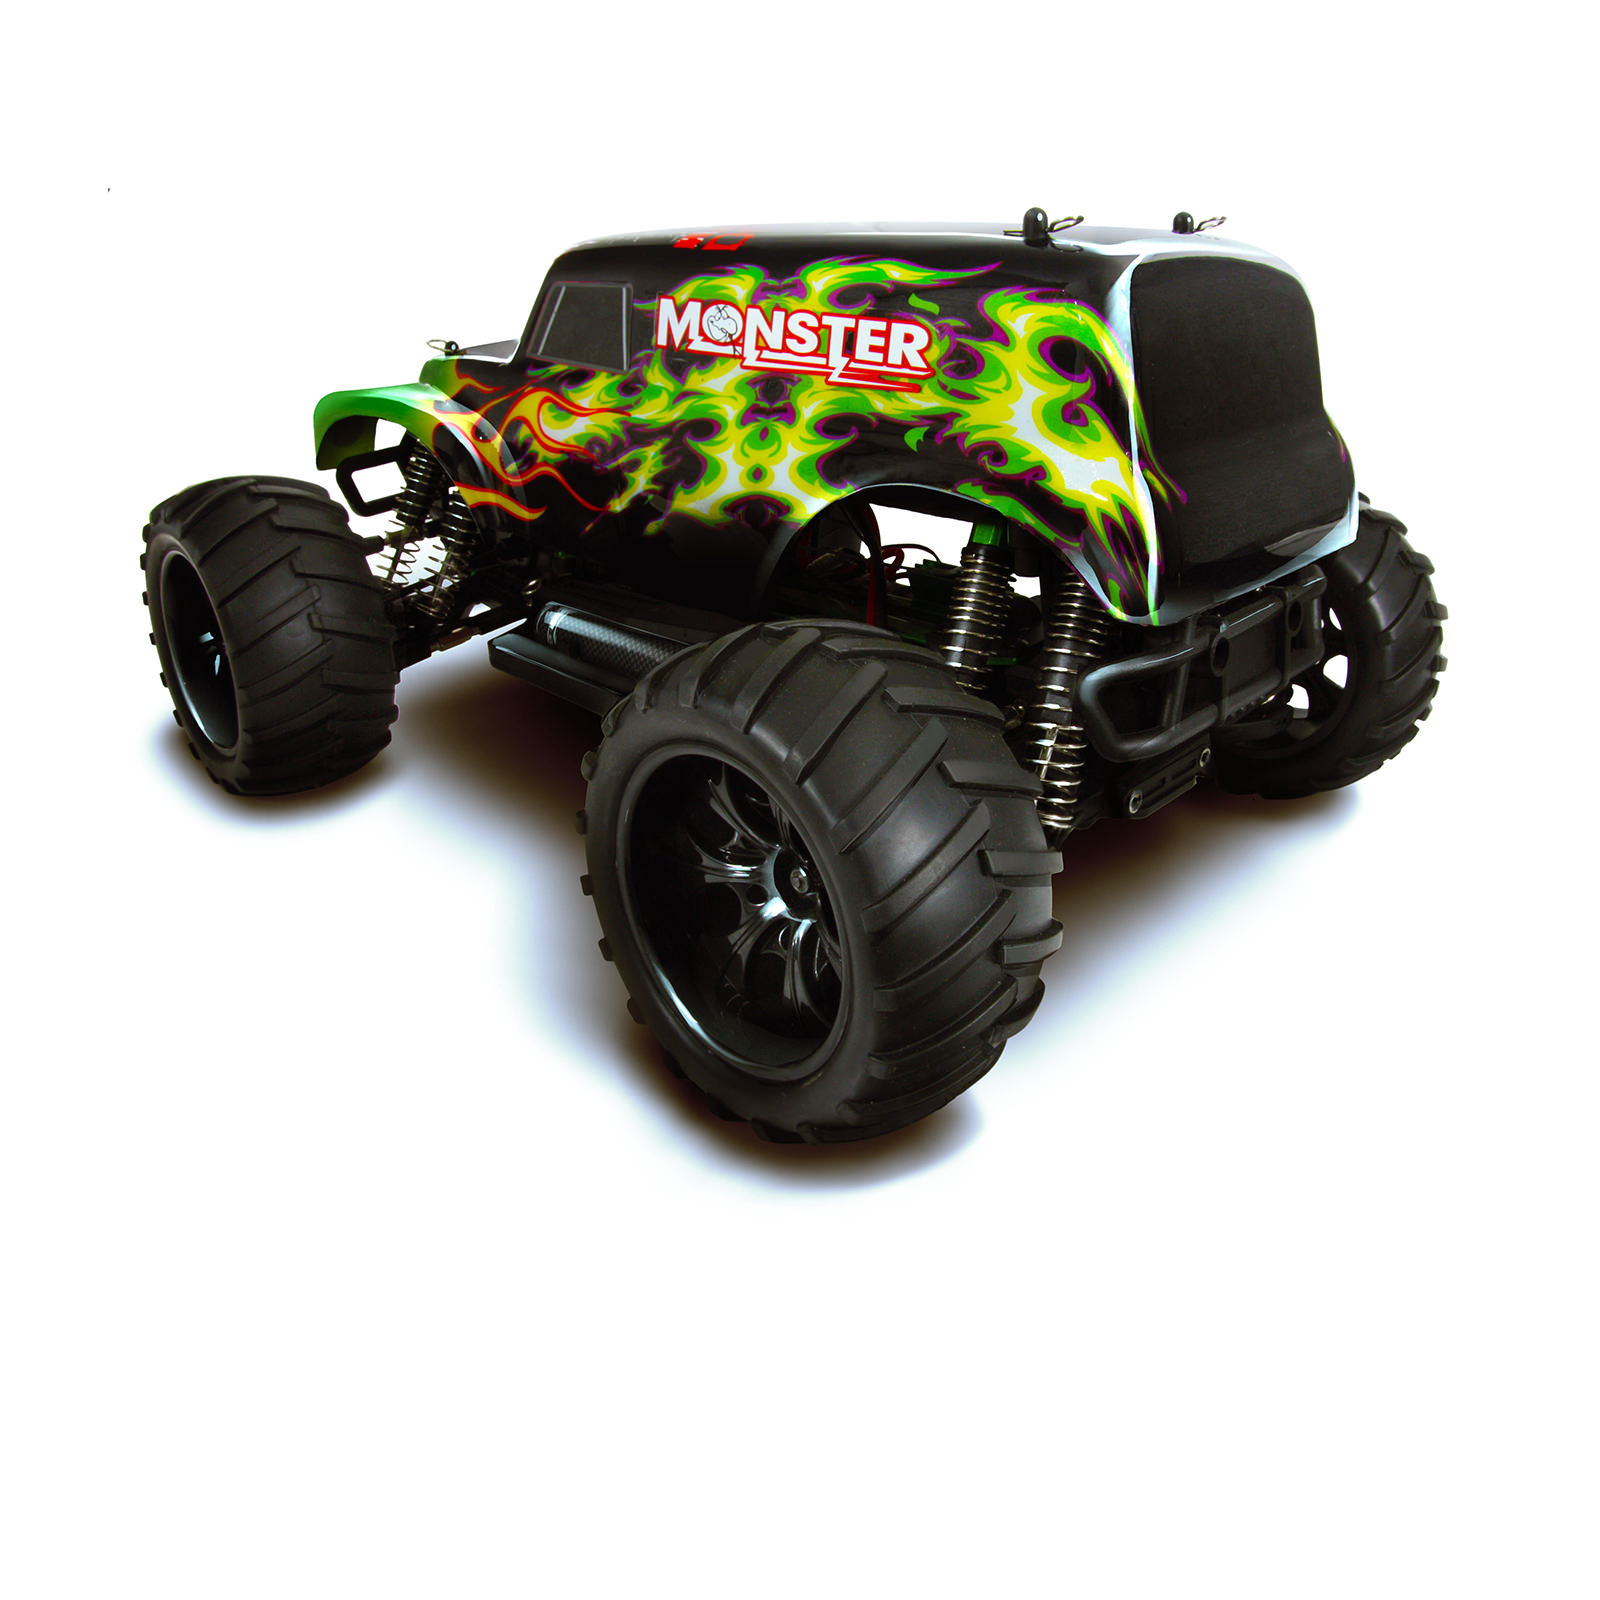 Rc Trucks Green : Hsp monster truck special edition green rc at hobby